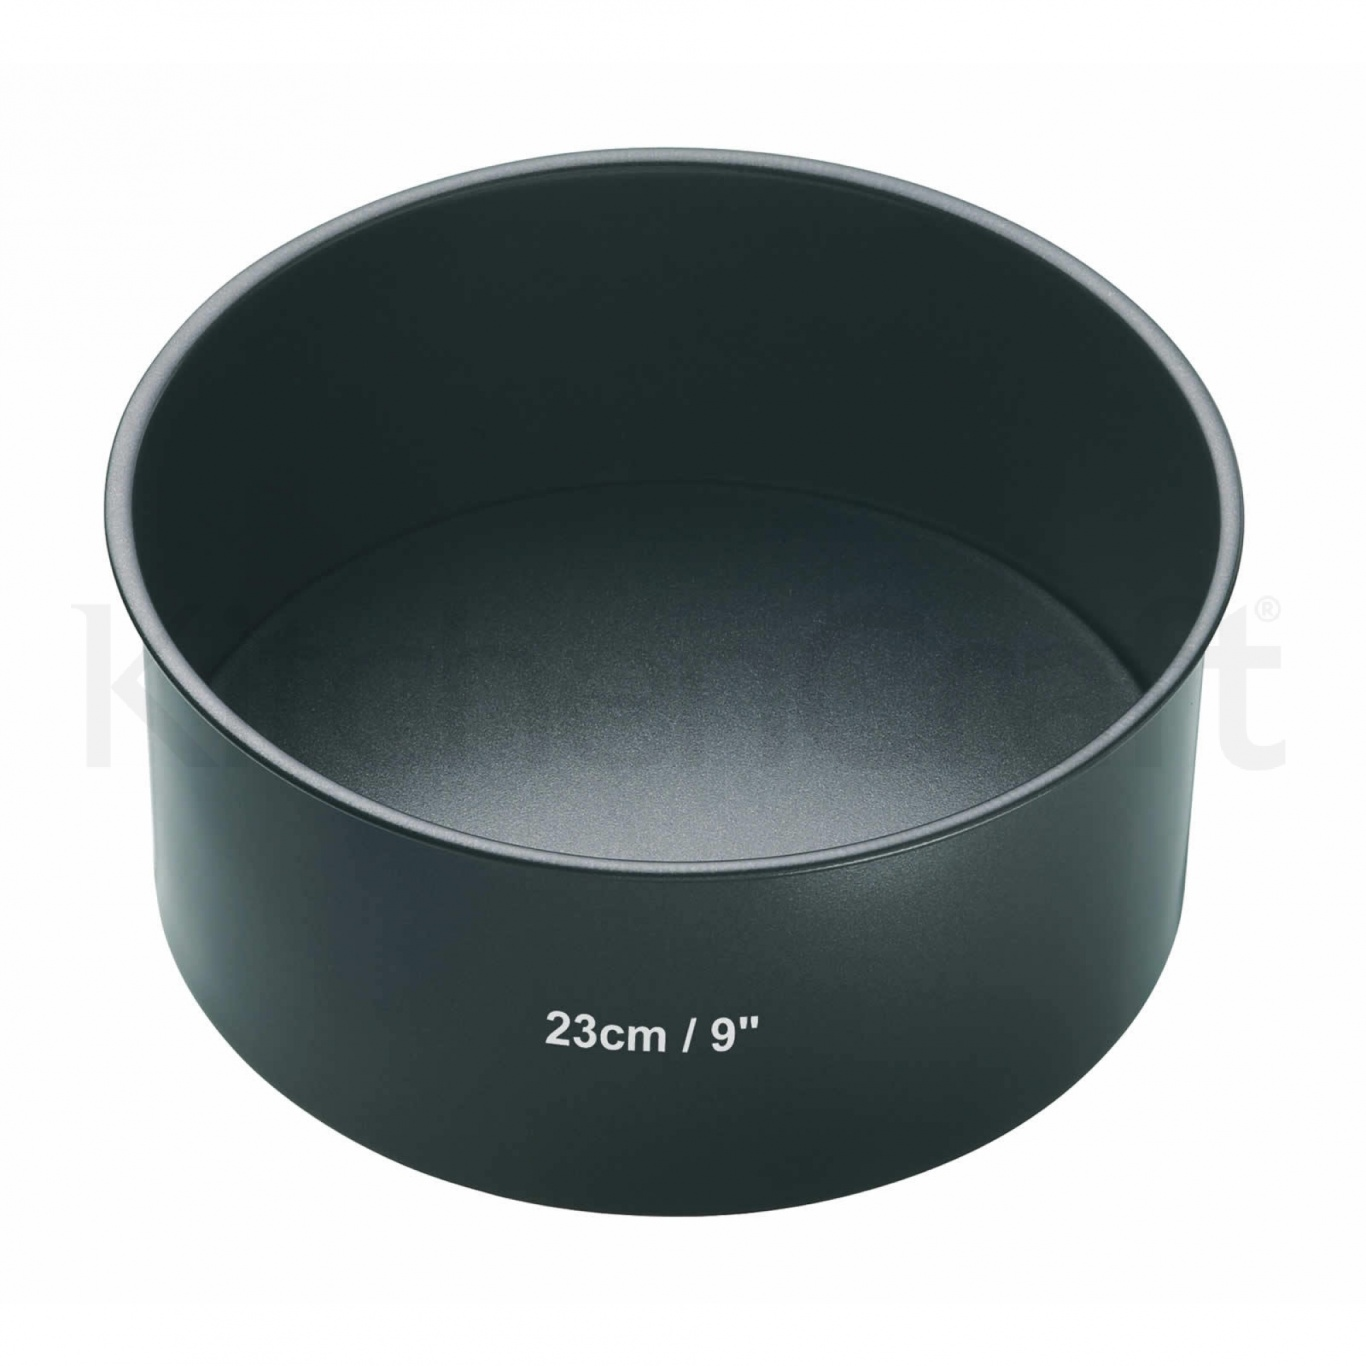 Image of Non Stick Round Deep Cake Tin 23cm 9